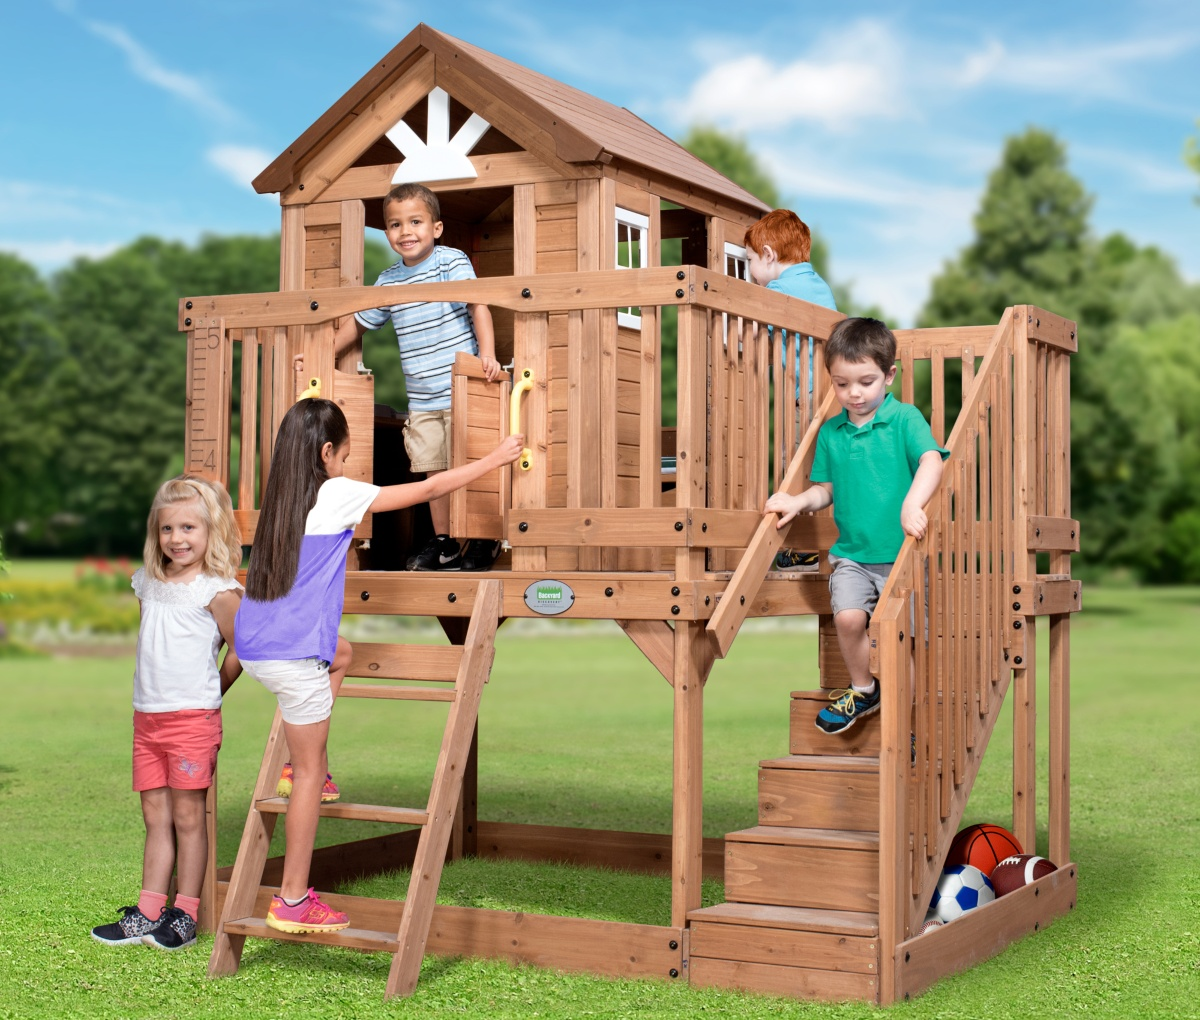 kids playing in elevated playhouse